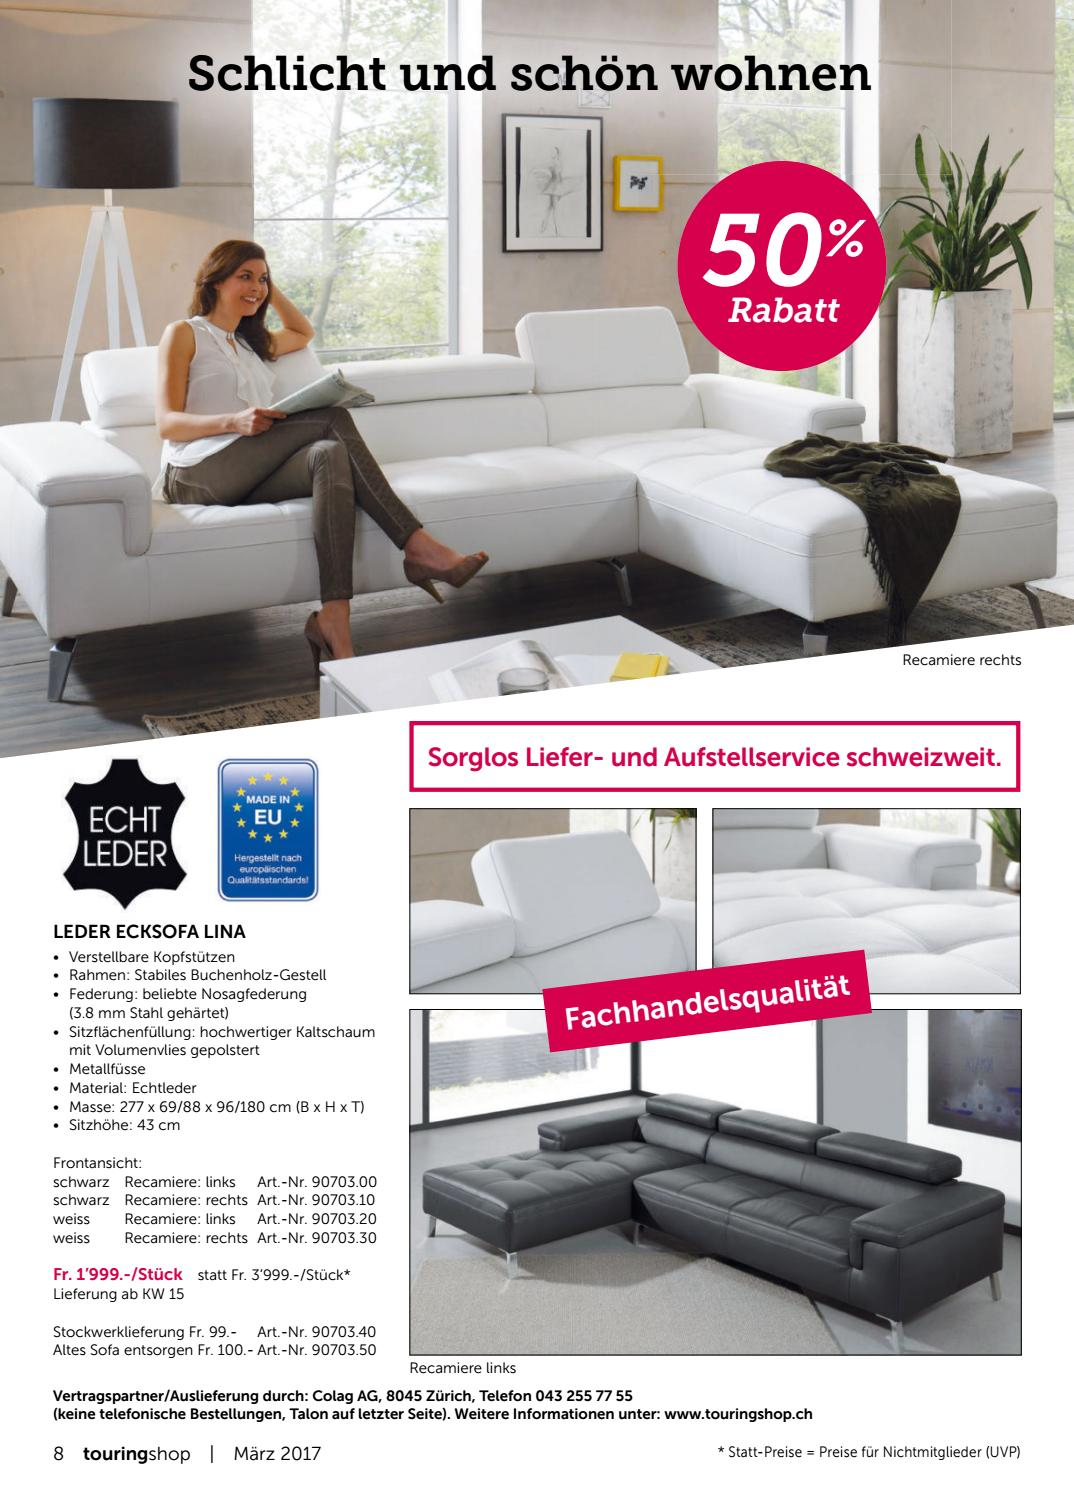 Leder Ecksofa Lina Touring Shop 03 2017 Deutsch By Touring Club Schweiz Suisse